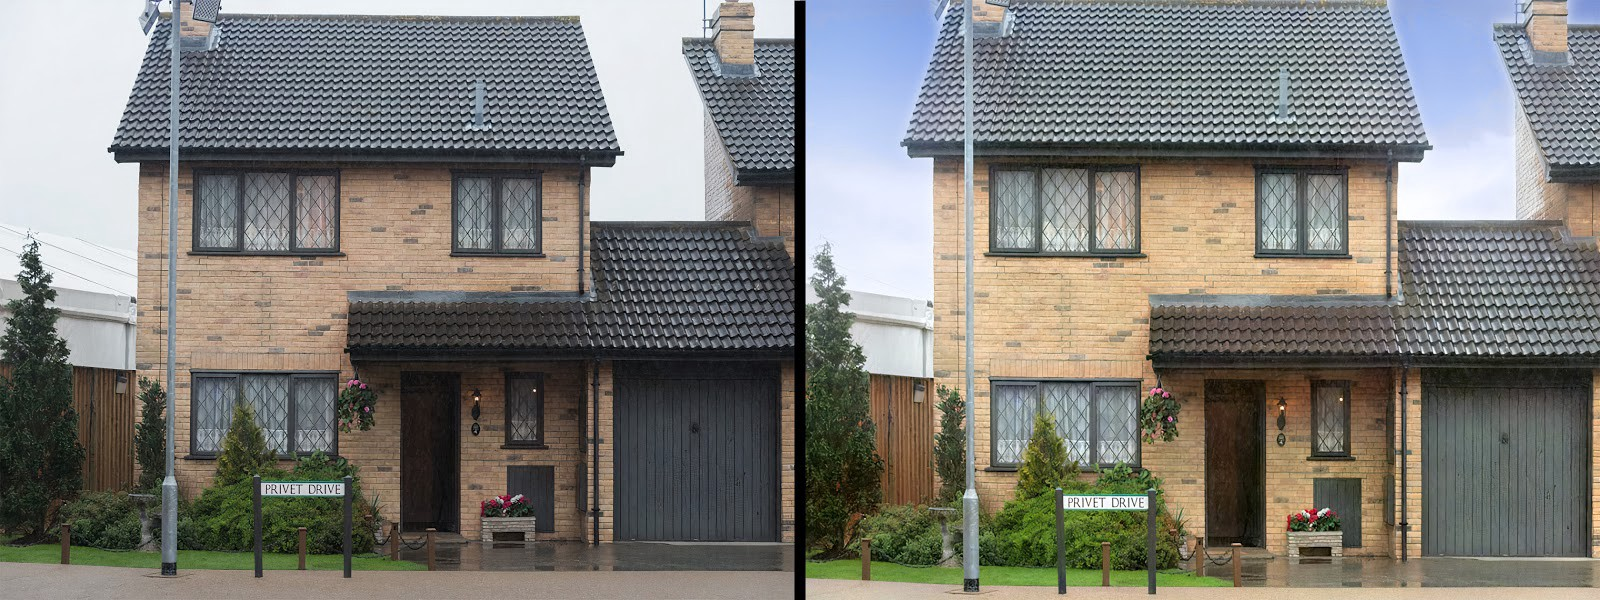 *Harry Potter's relations, the Dursley's house on Privet Drive sold for £290,000, but they could have netted an additional £6,000 with better photos. [Image enhanced by [Autoenhance.ai](http://autoenhance.ai).]*